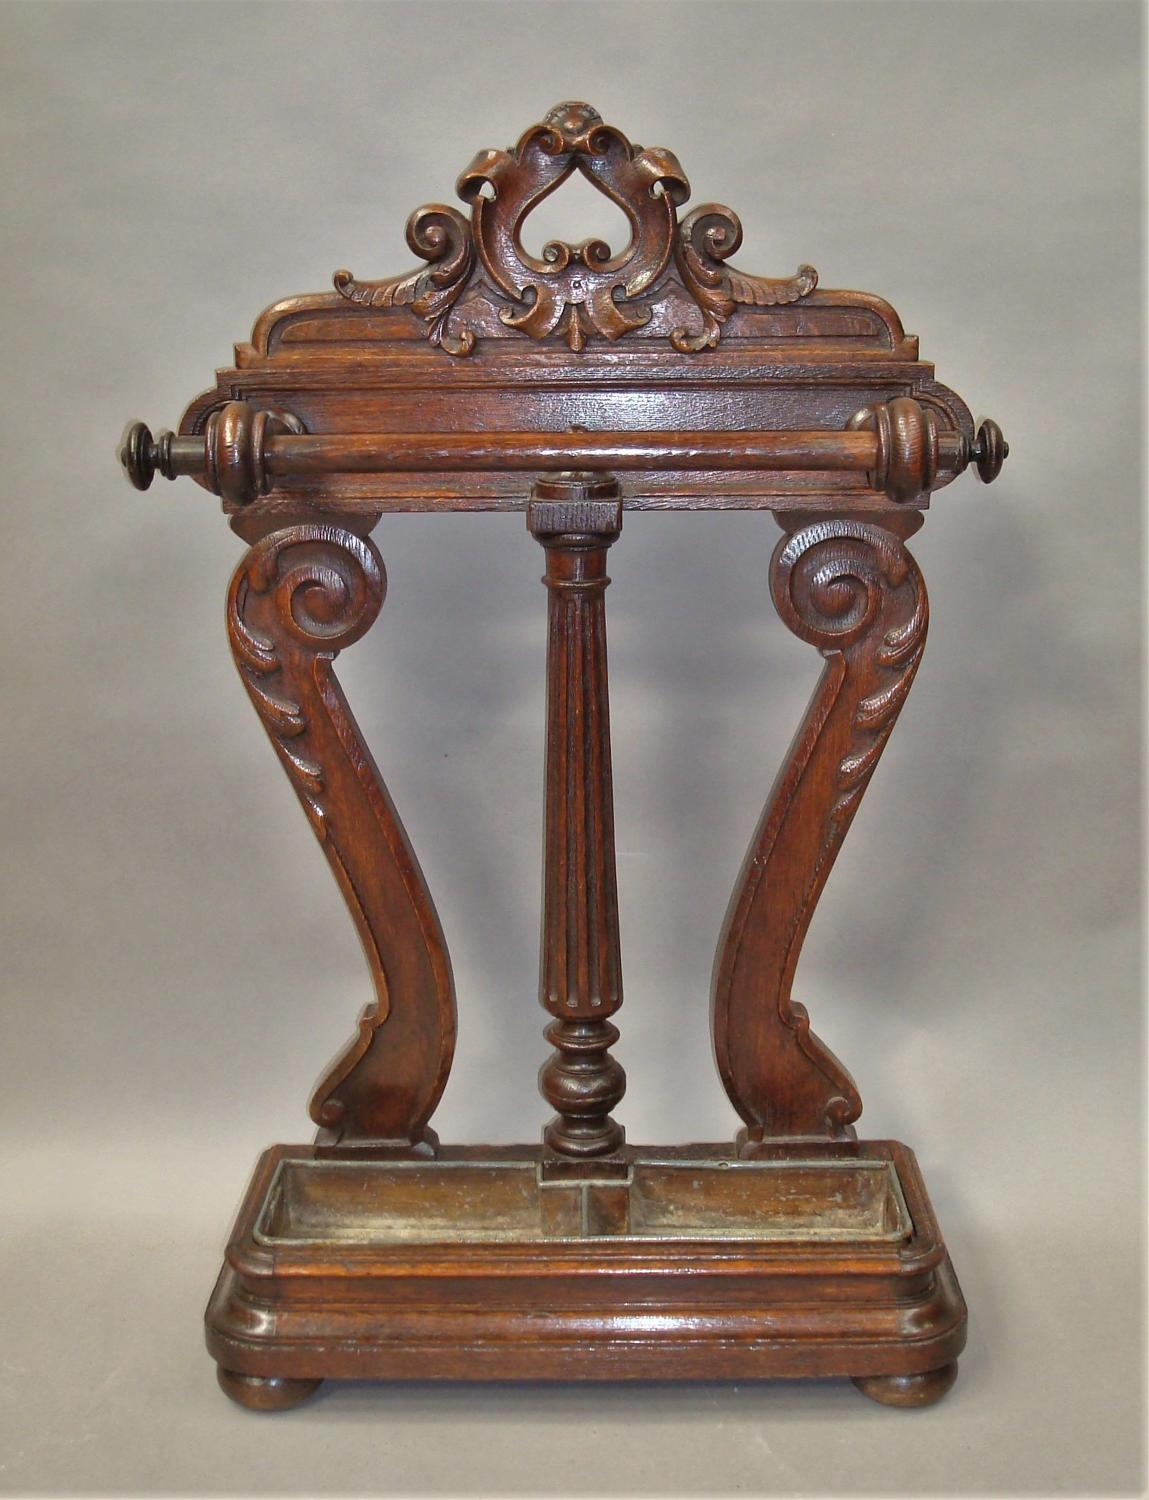 Regency oak stick stand / umbrella stand